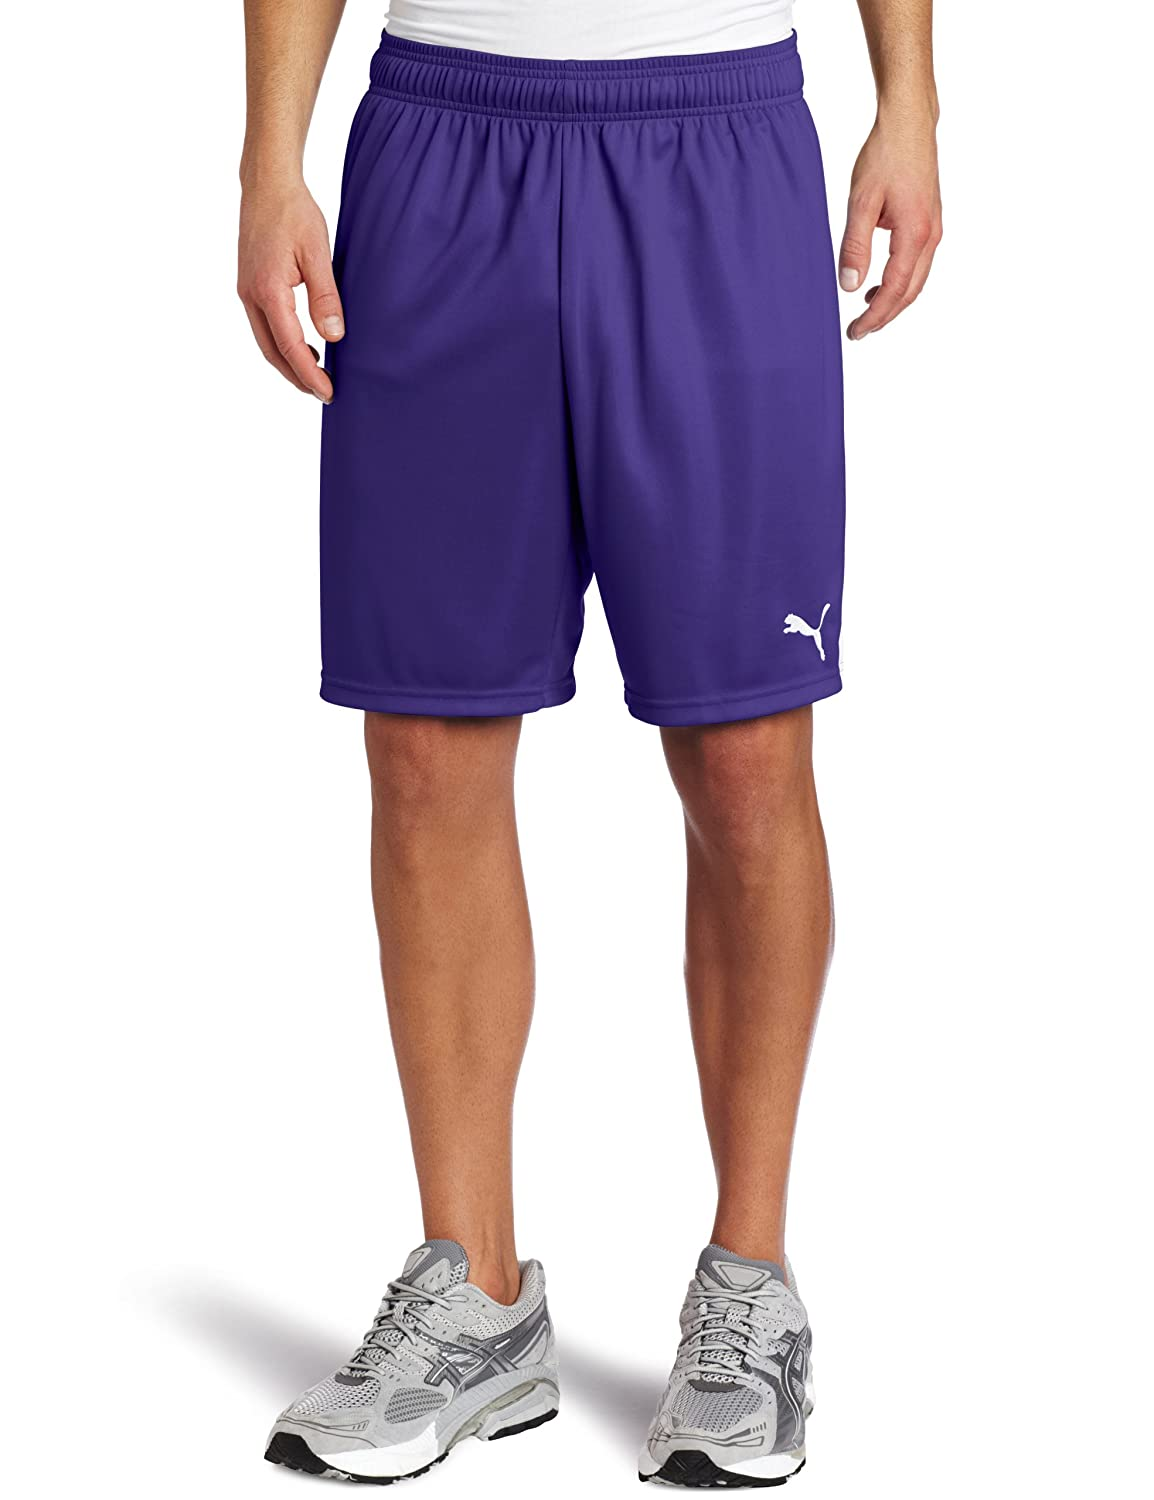 PUMA Team Shorts without Inner Slip, Team Violet-Weiß, Medium